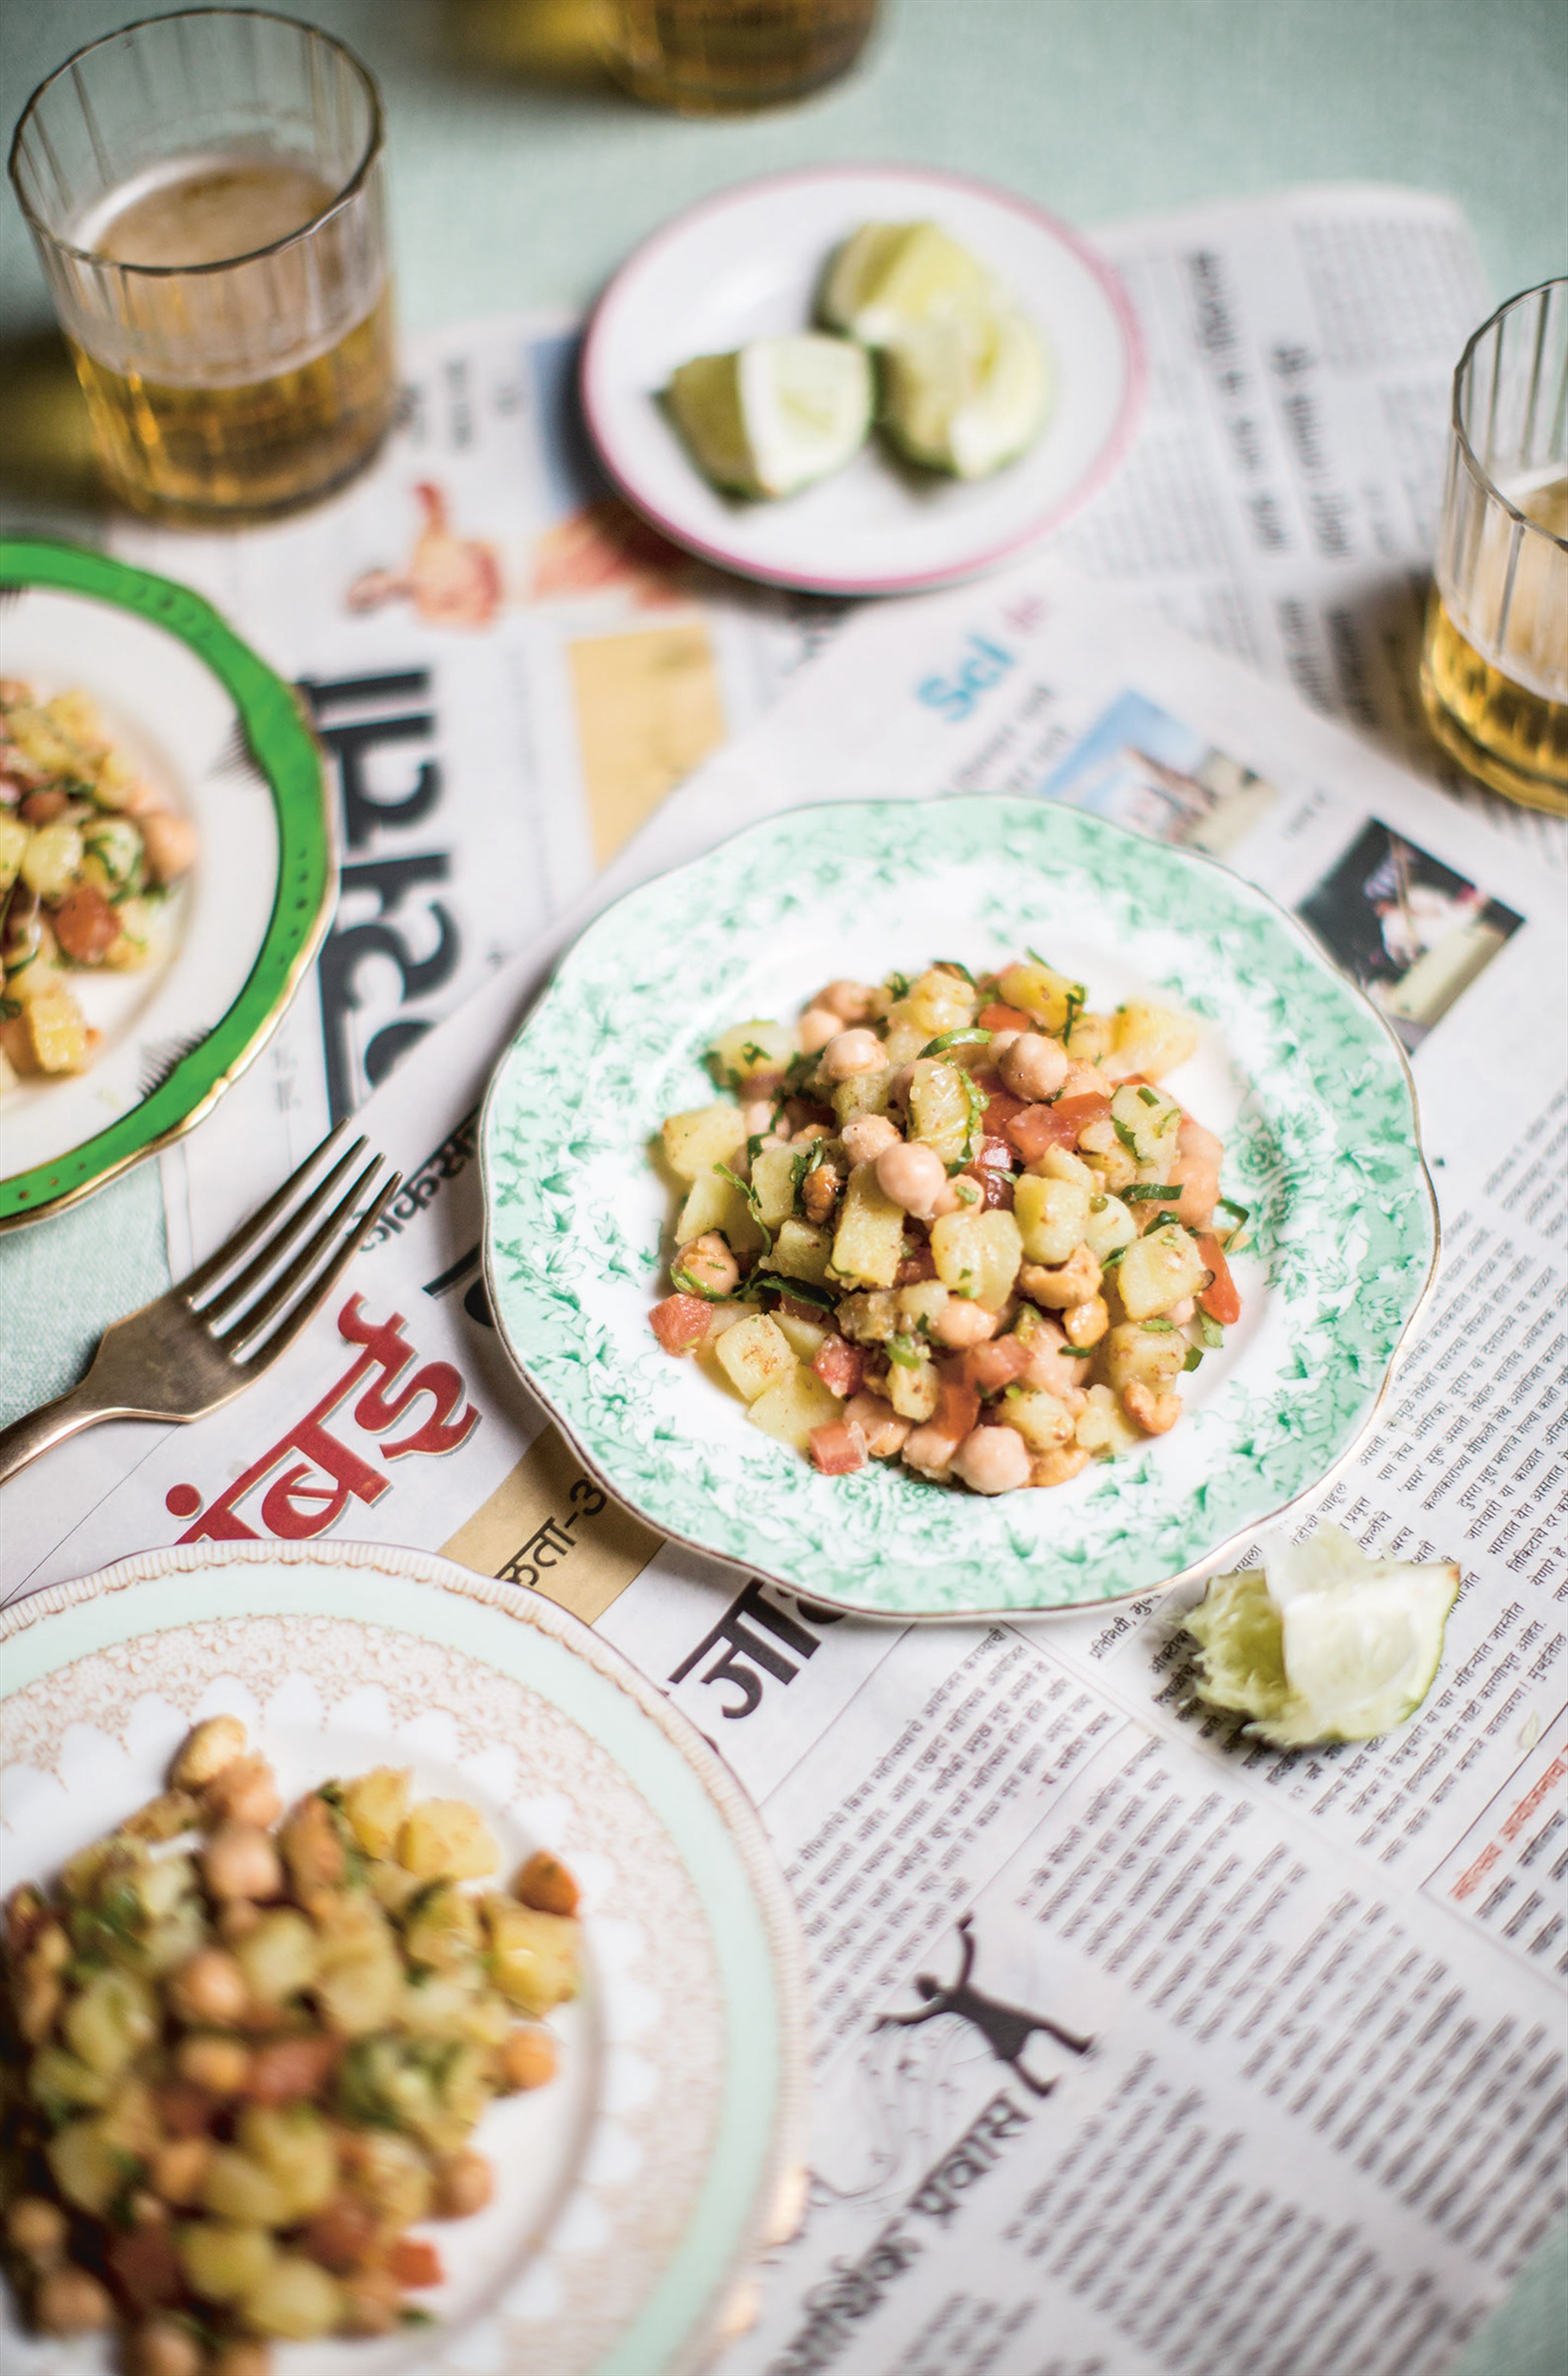 Aloo channa caju chaat